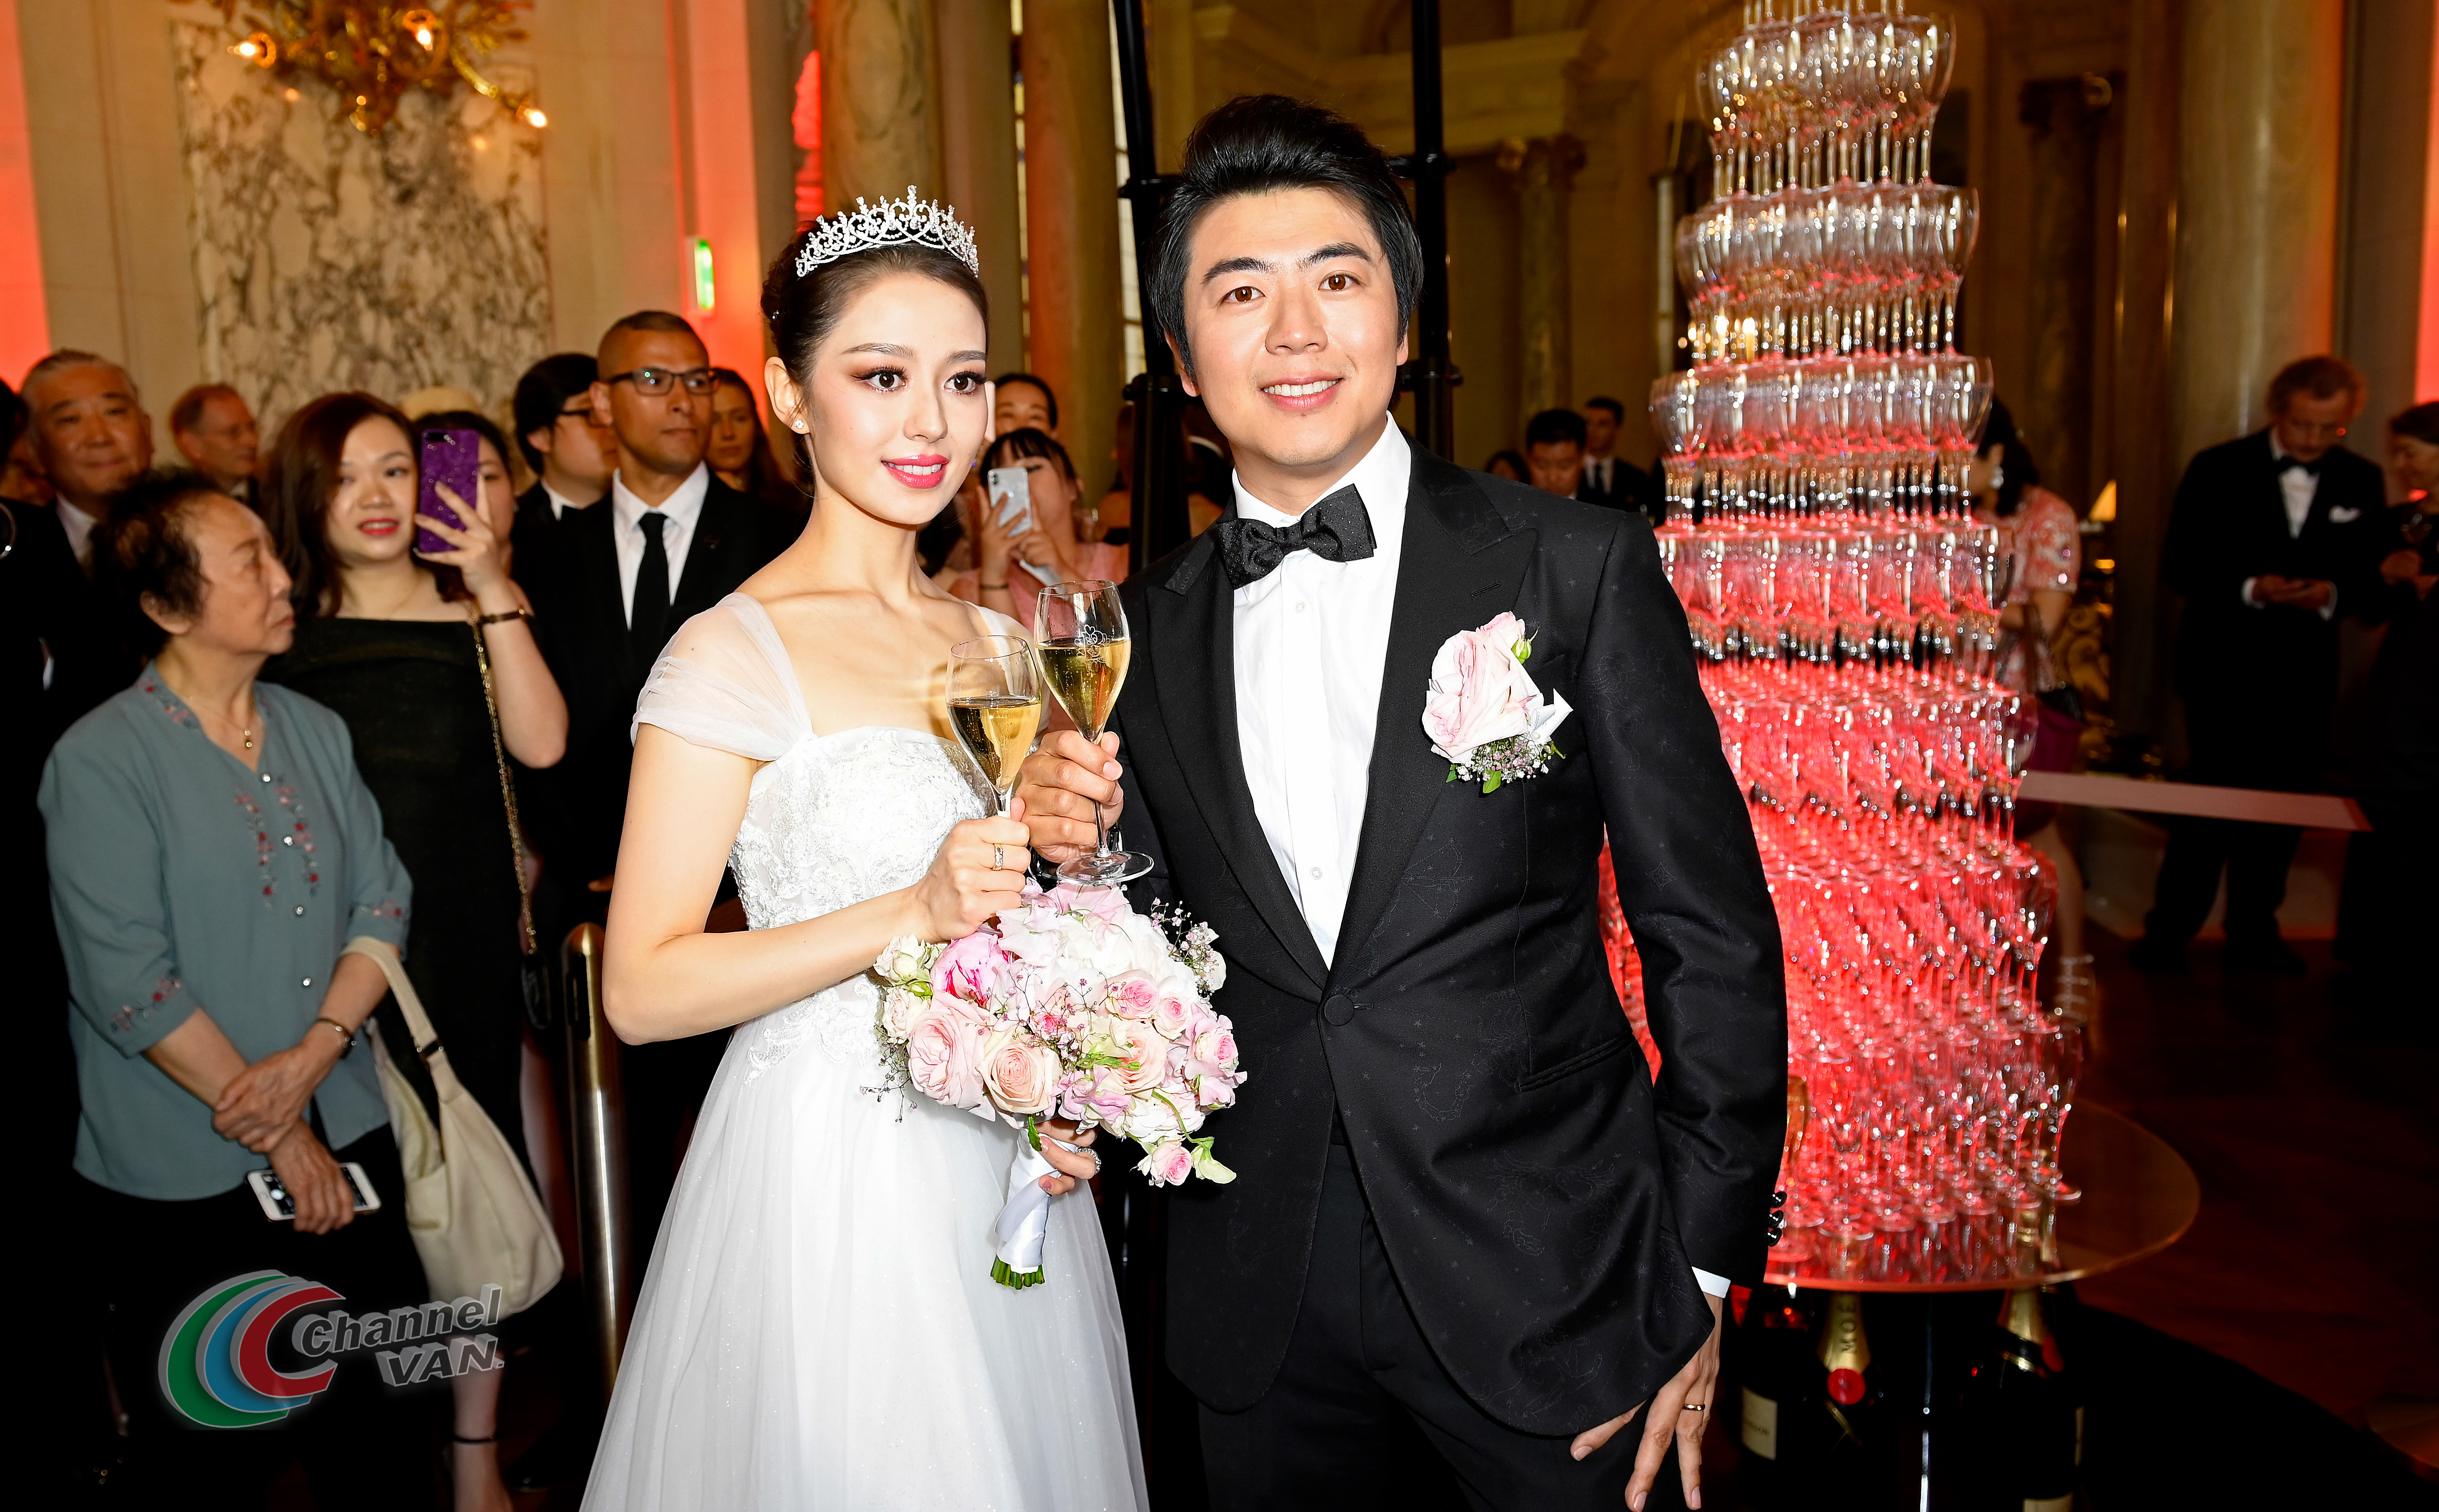 PARIS, FRANCE - JUNE 02: Pianists Lang Lang & Gina Alice drink a glass of Moet et Chandon Champagne during their Cocktail Wedding at Hotel Shangri-La on June 02, 2019 in Paris, France. (Photo by Kristy Sparow/Getty Images for Moet Hennessy)